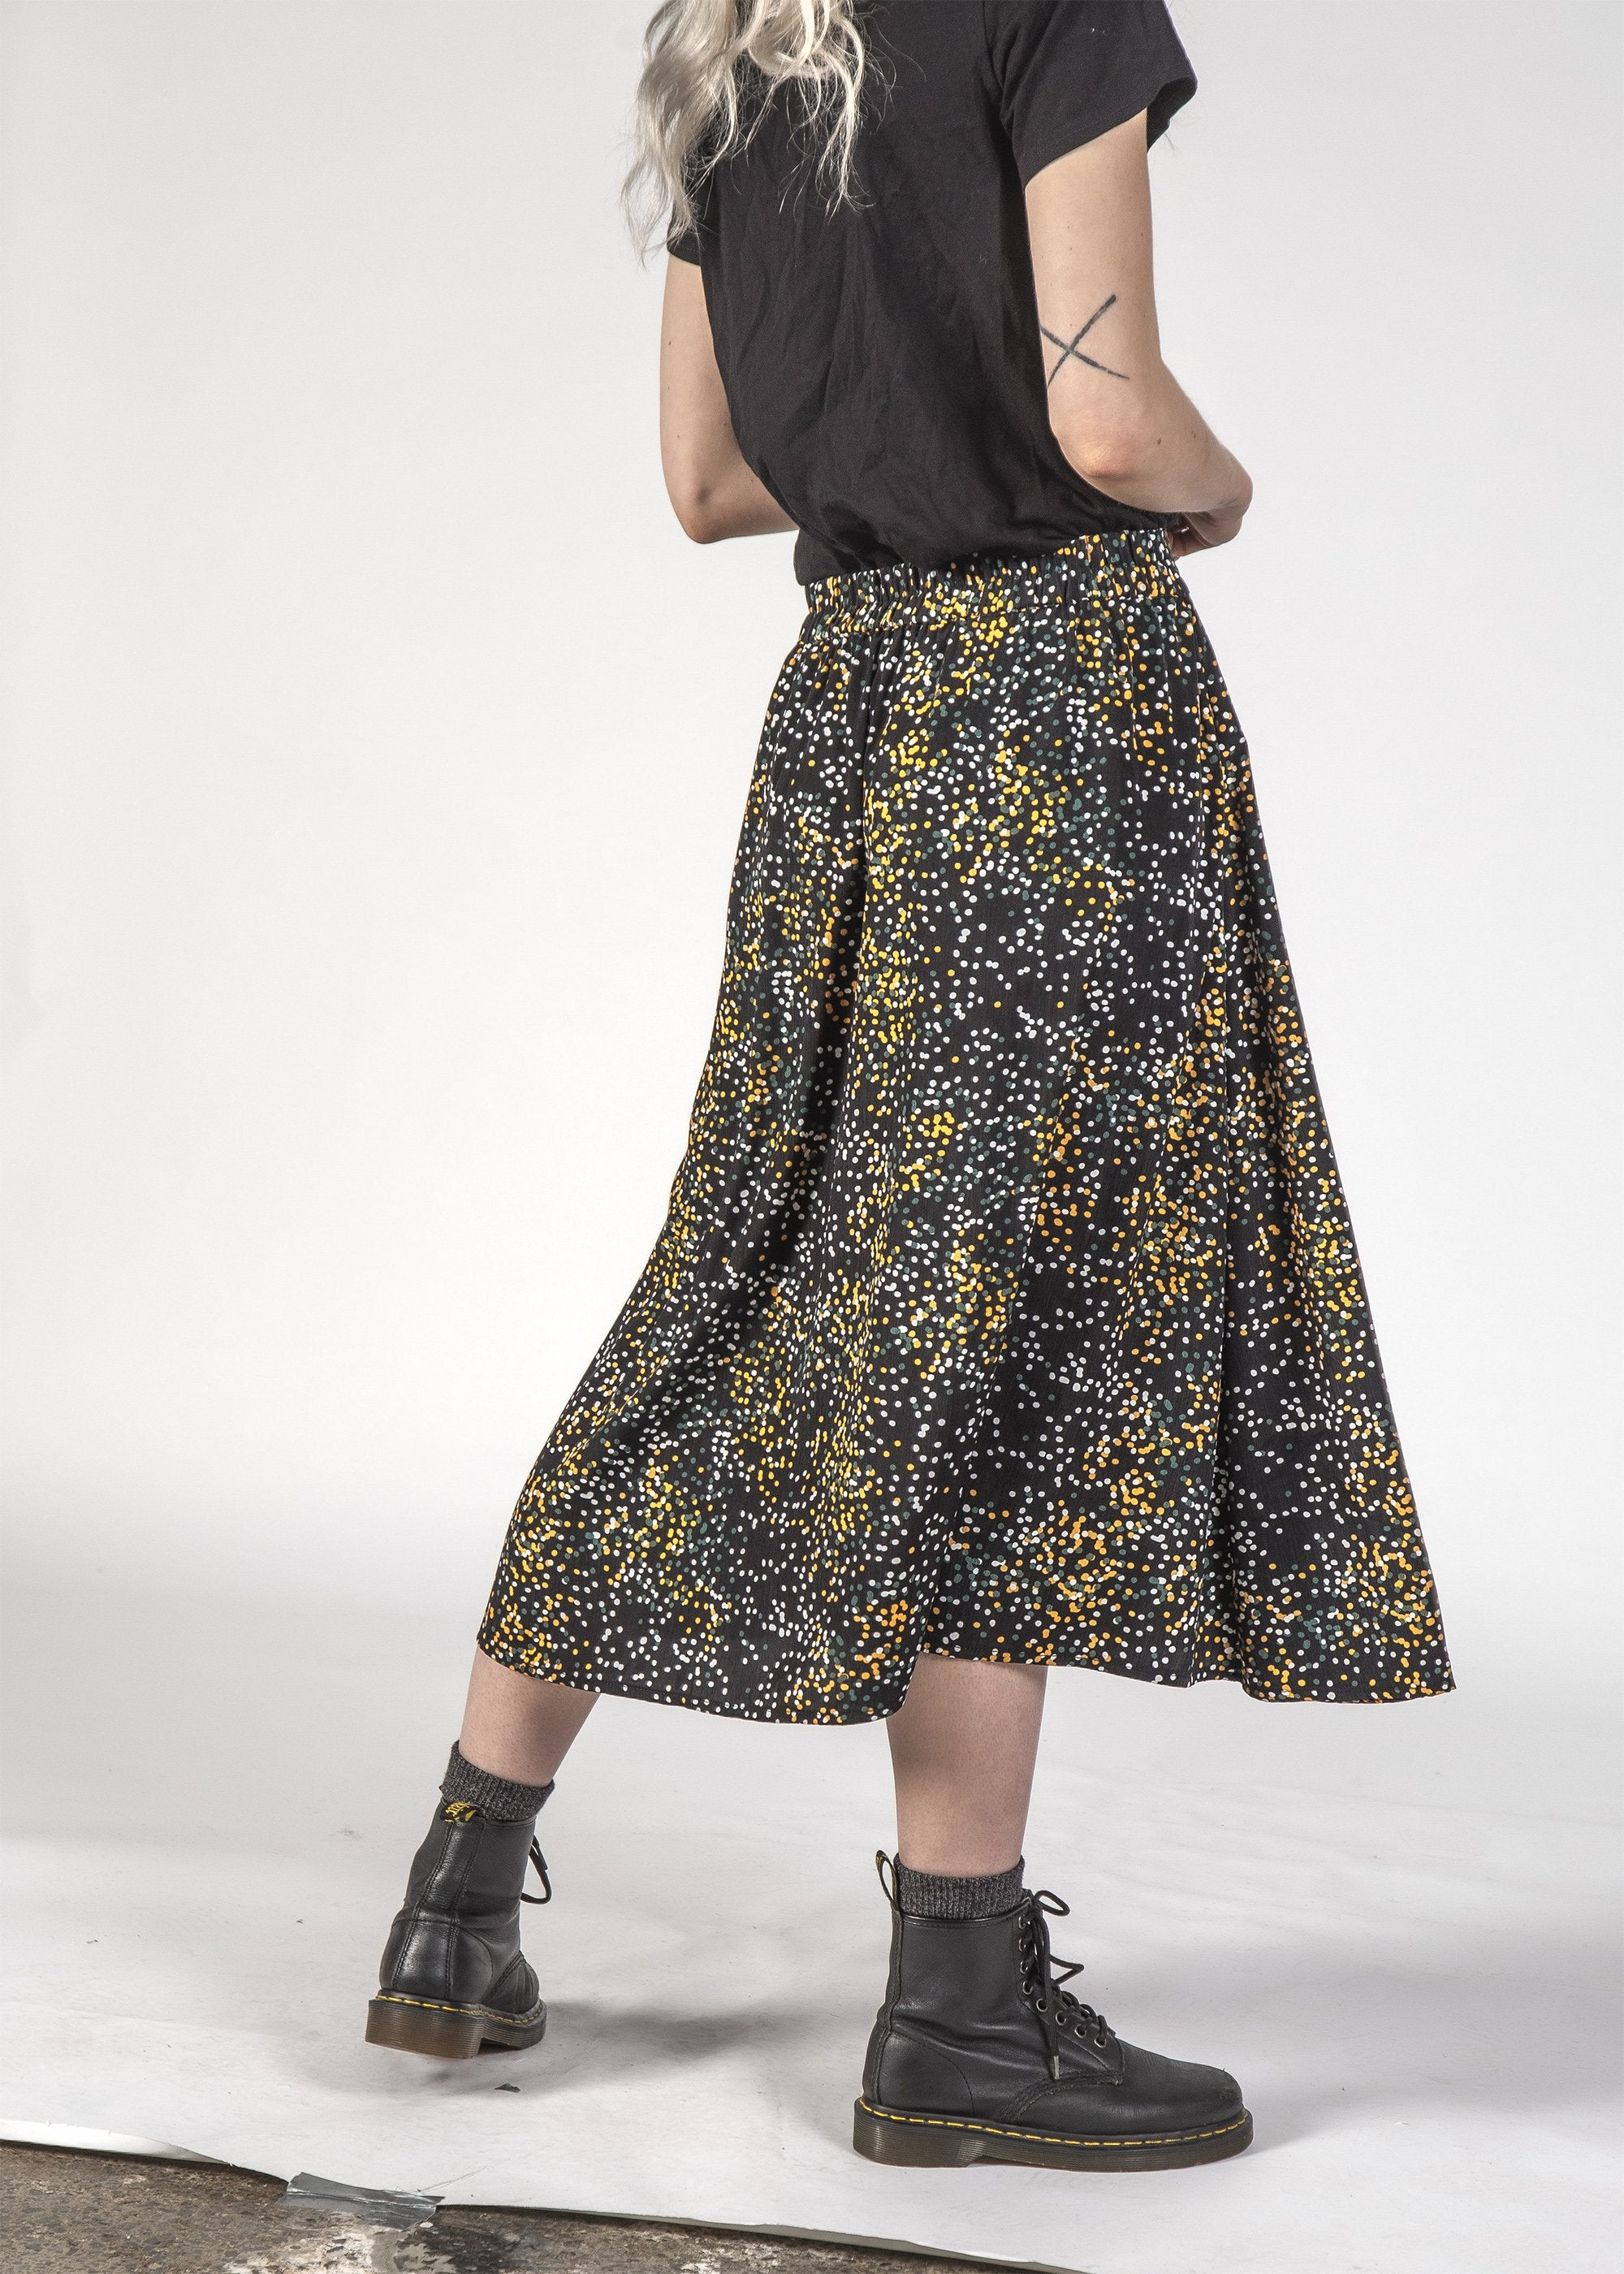 SALE - FREEDOM SKIRT - Black Mini Blotch